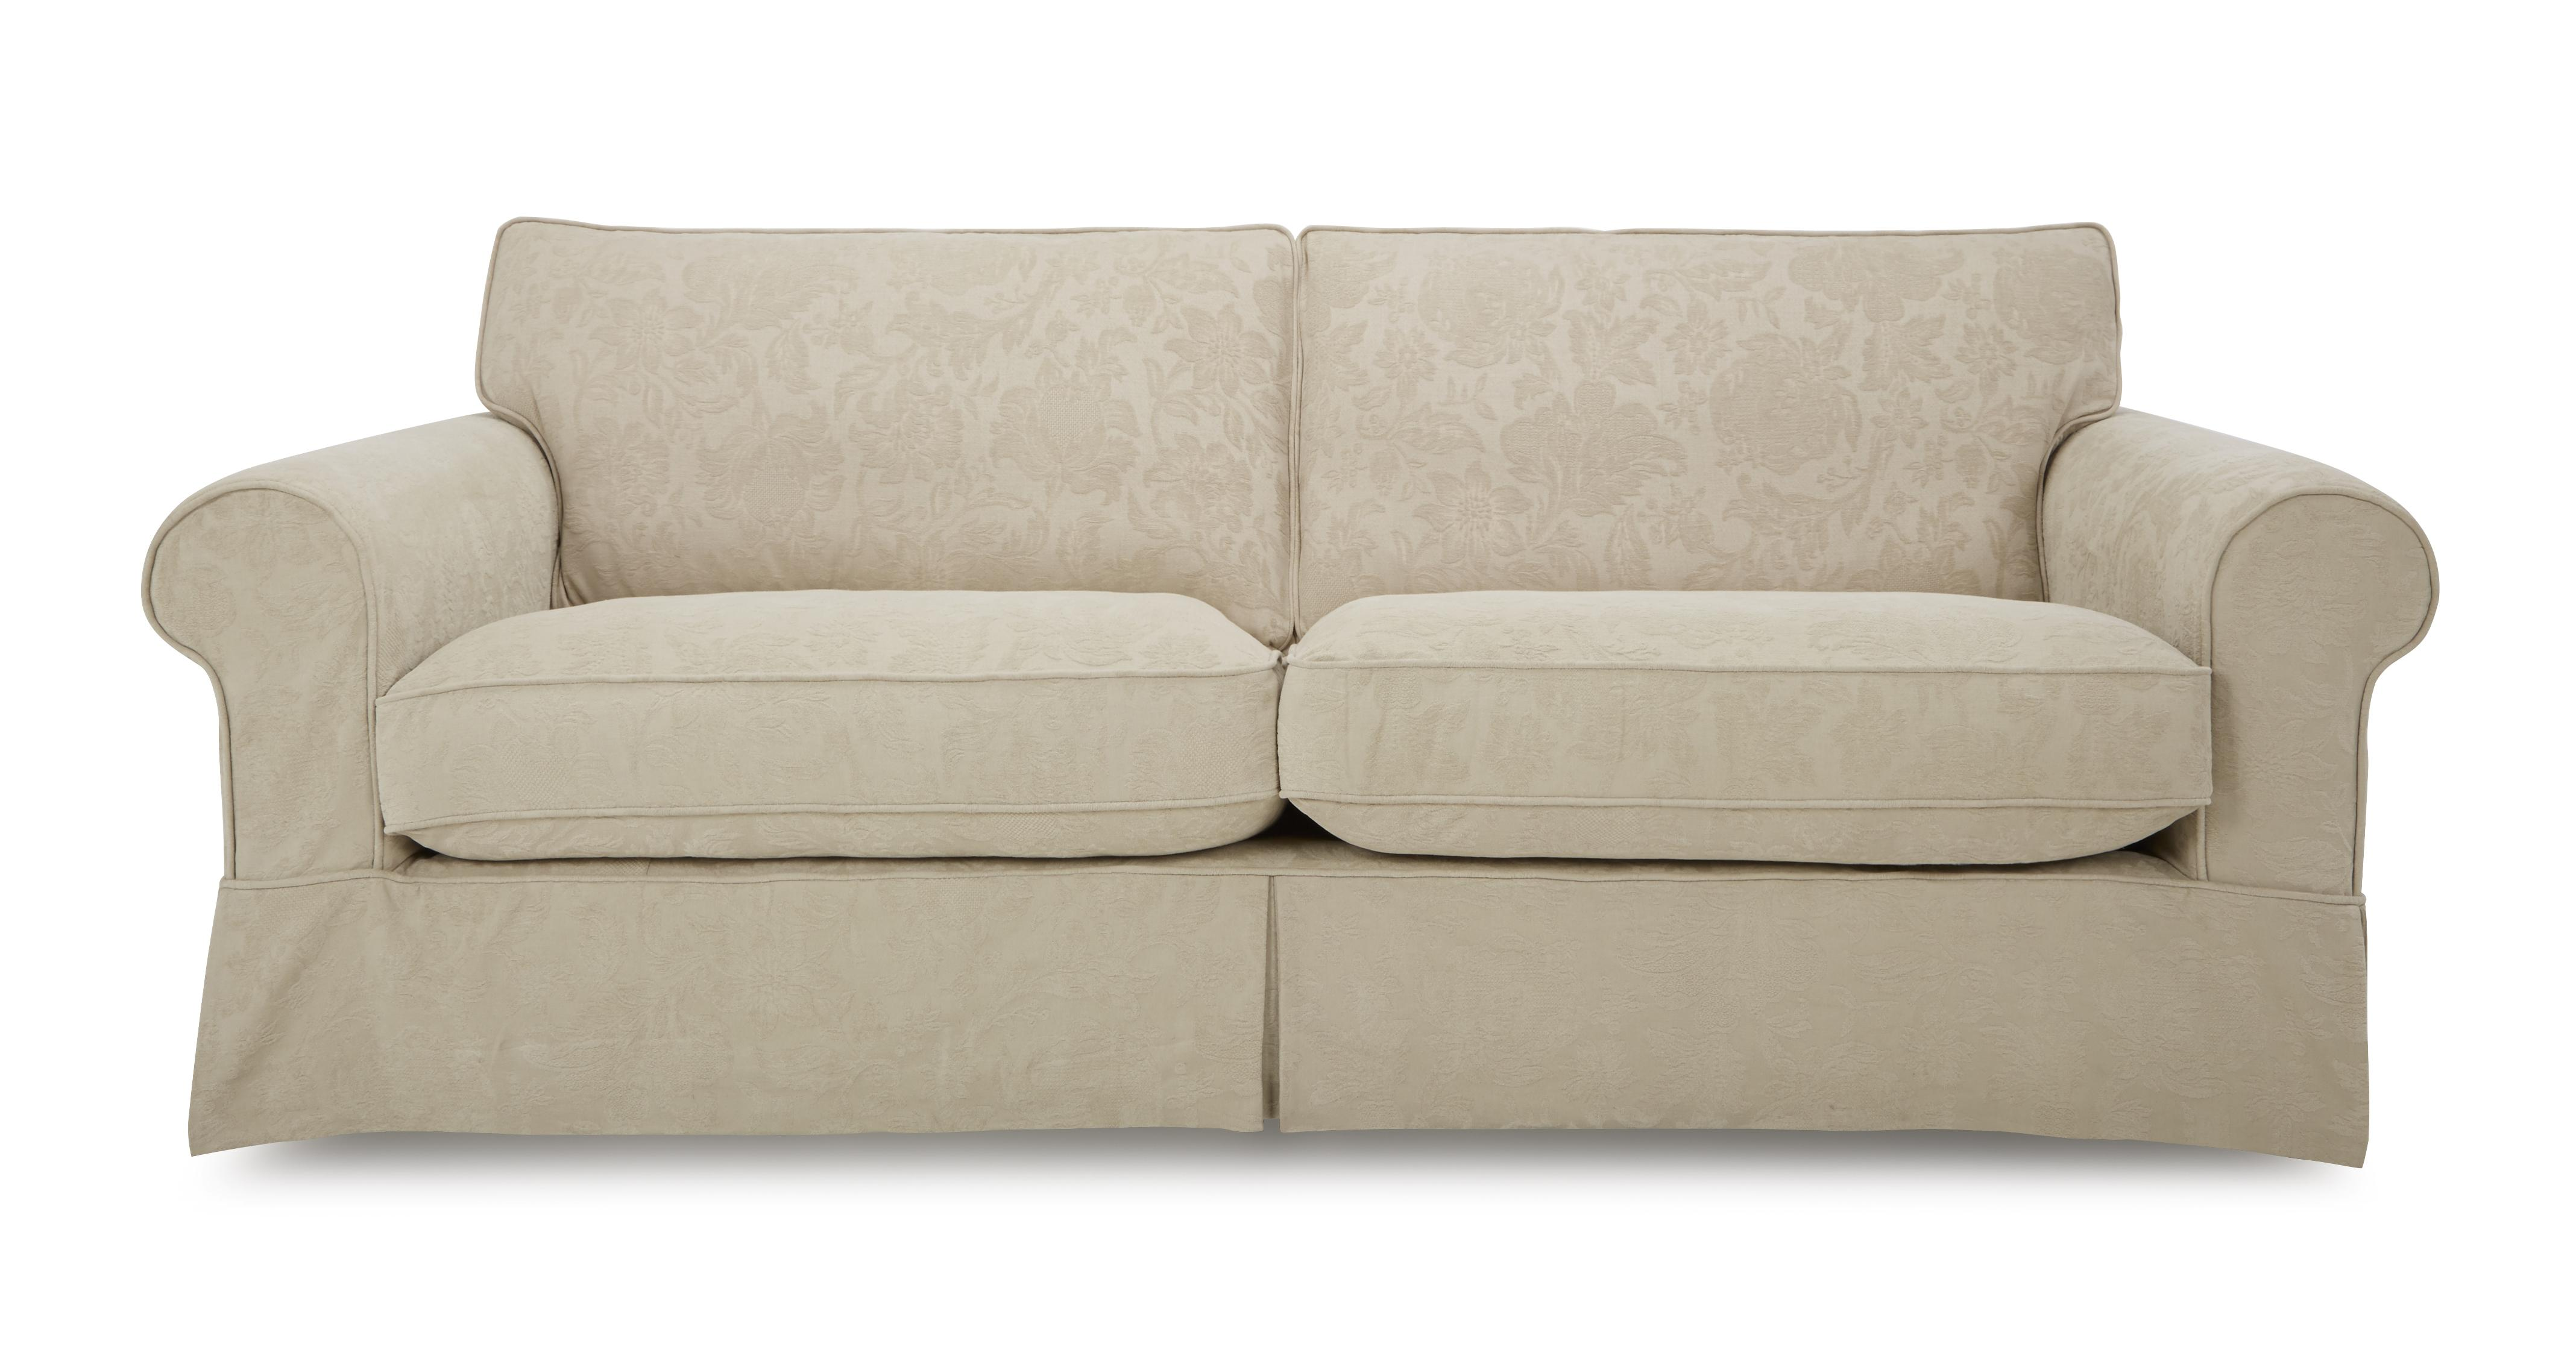 patterned sofas uk sears sofa bed double dfs kendal linen pattern fabric formal back grand ebay